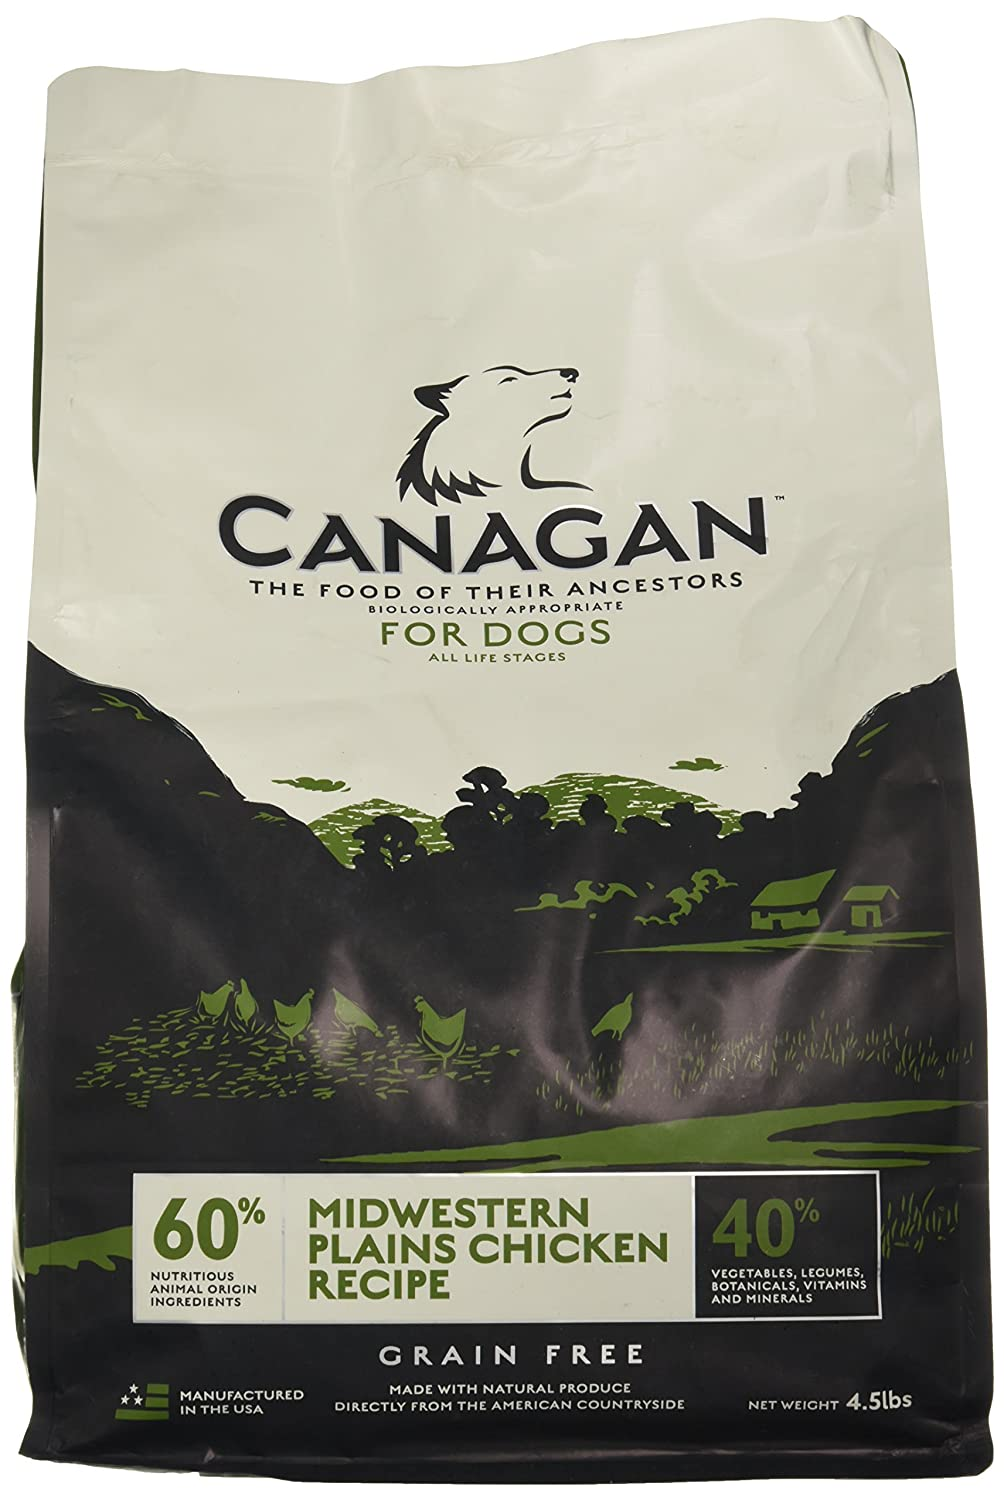 CANAGAN Grain Free Midwestern Plains Chicken Recipe for Dogs, 4.5 lb. Bag good